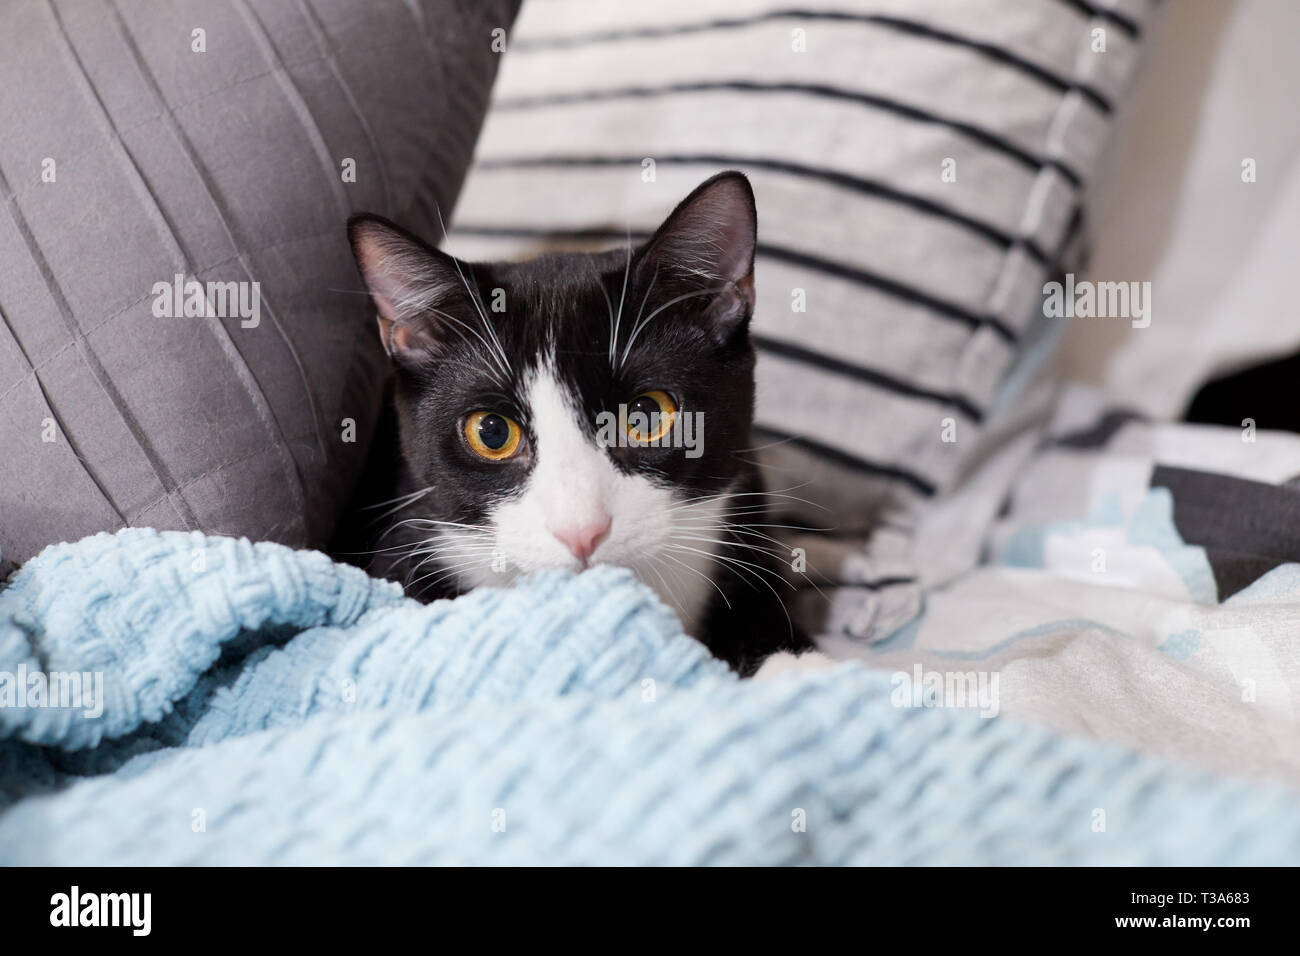 A black and white tuxedo cat is hiding on a bed between pillows and behind a blue blanket - Stock Image